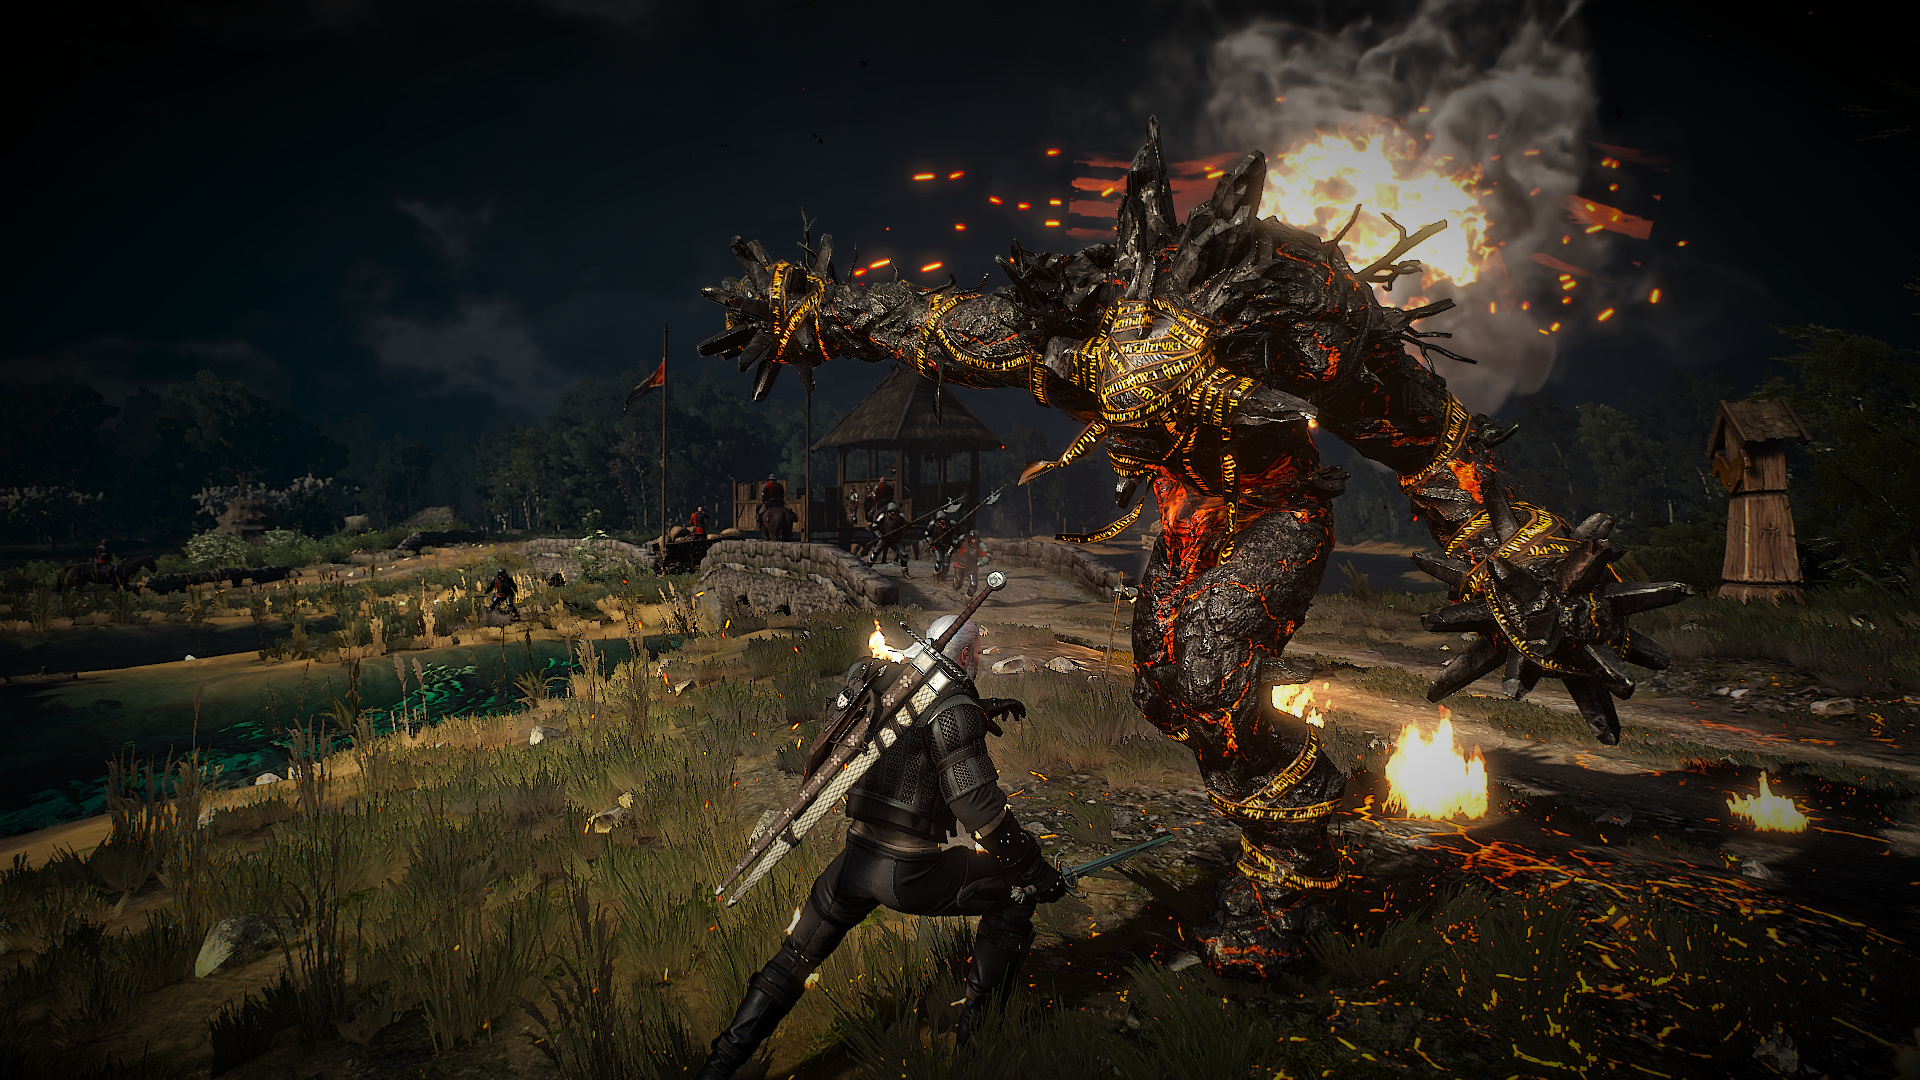 The Witcher 3 HDMR Mod Increases Details For Monsters